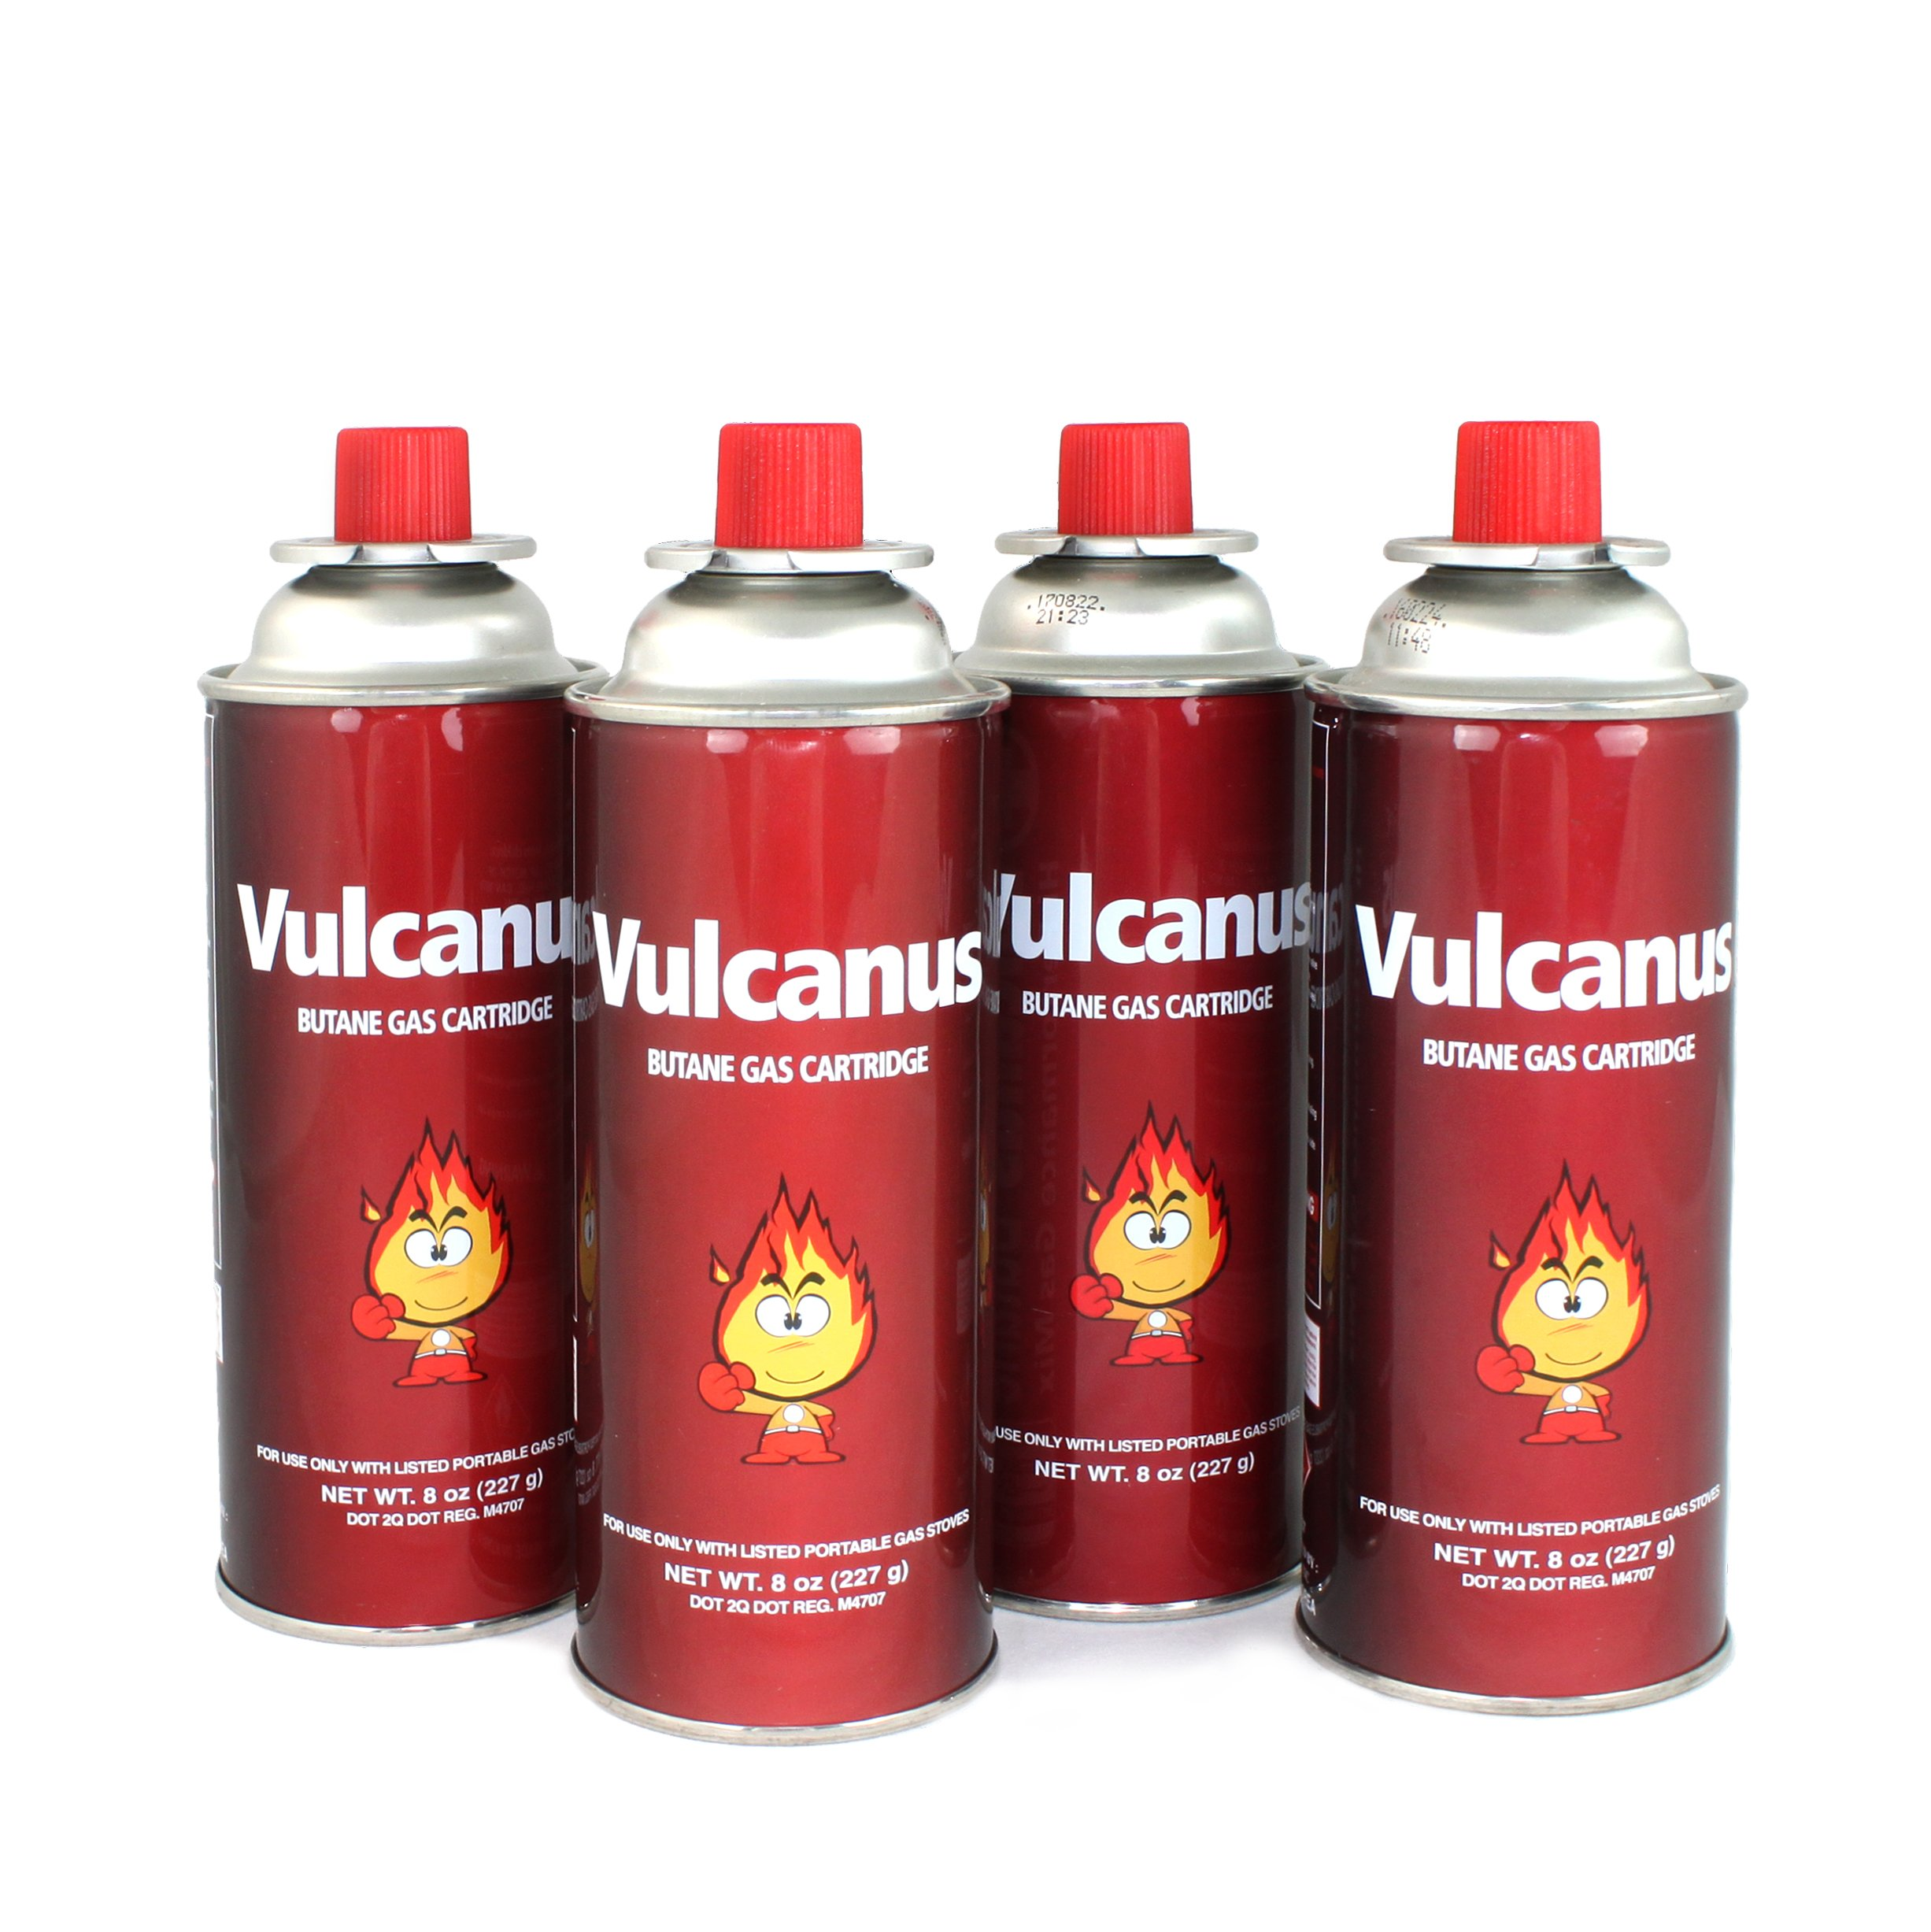 [ 4 Cans ] ROM AMERICA Vulcanus Butane Gas Cartridge Fuel Canister Camping Stoves